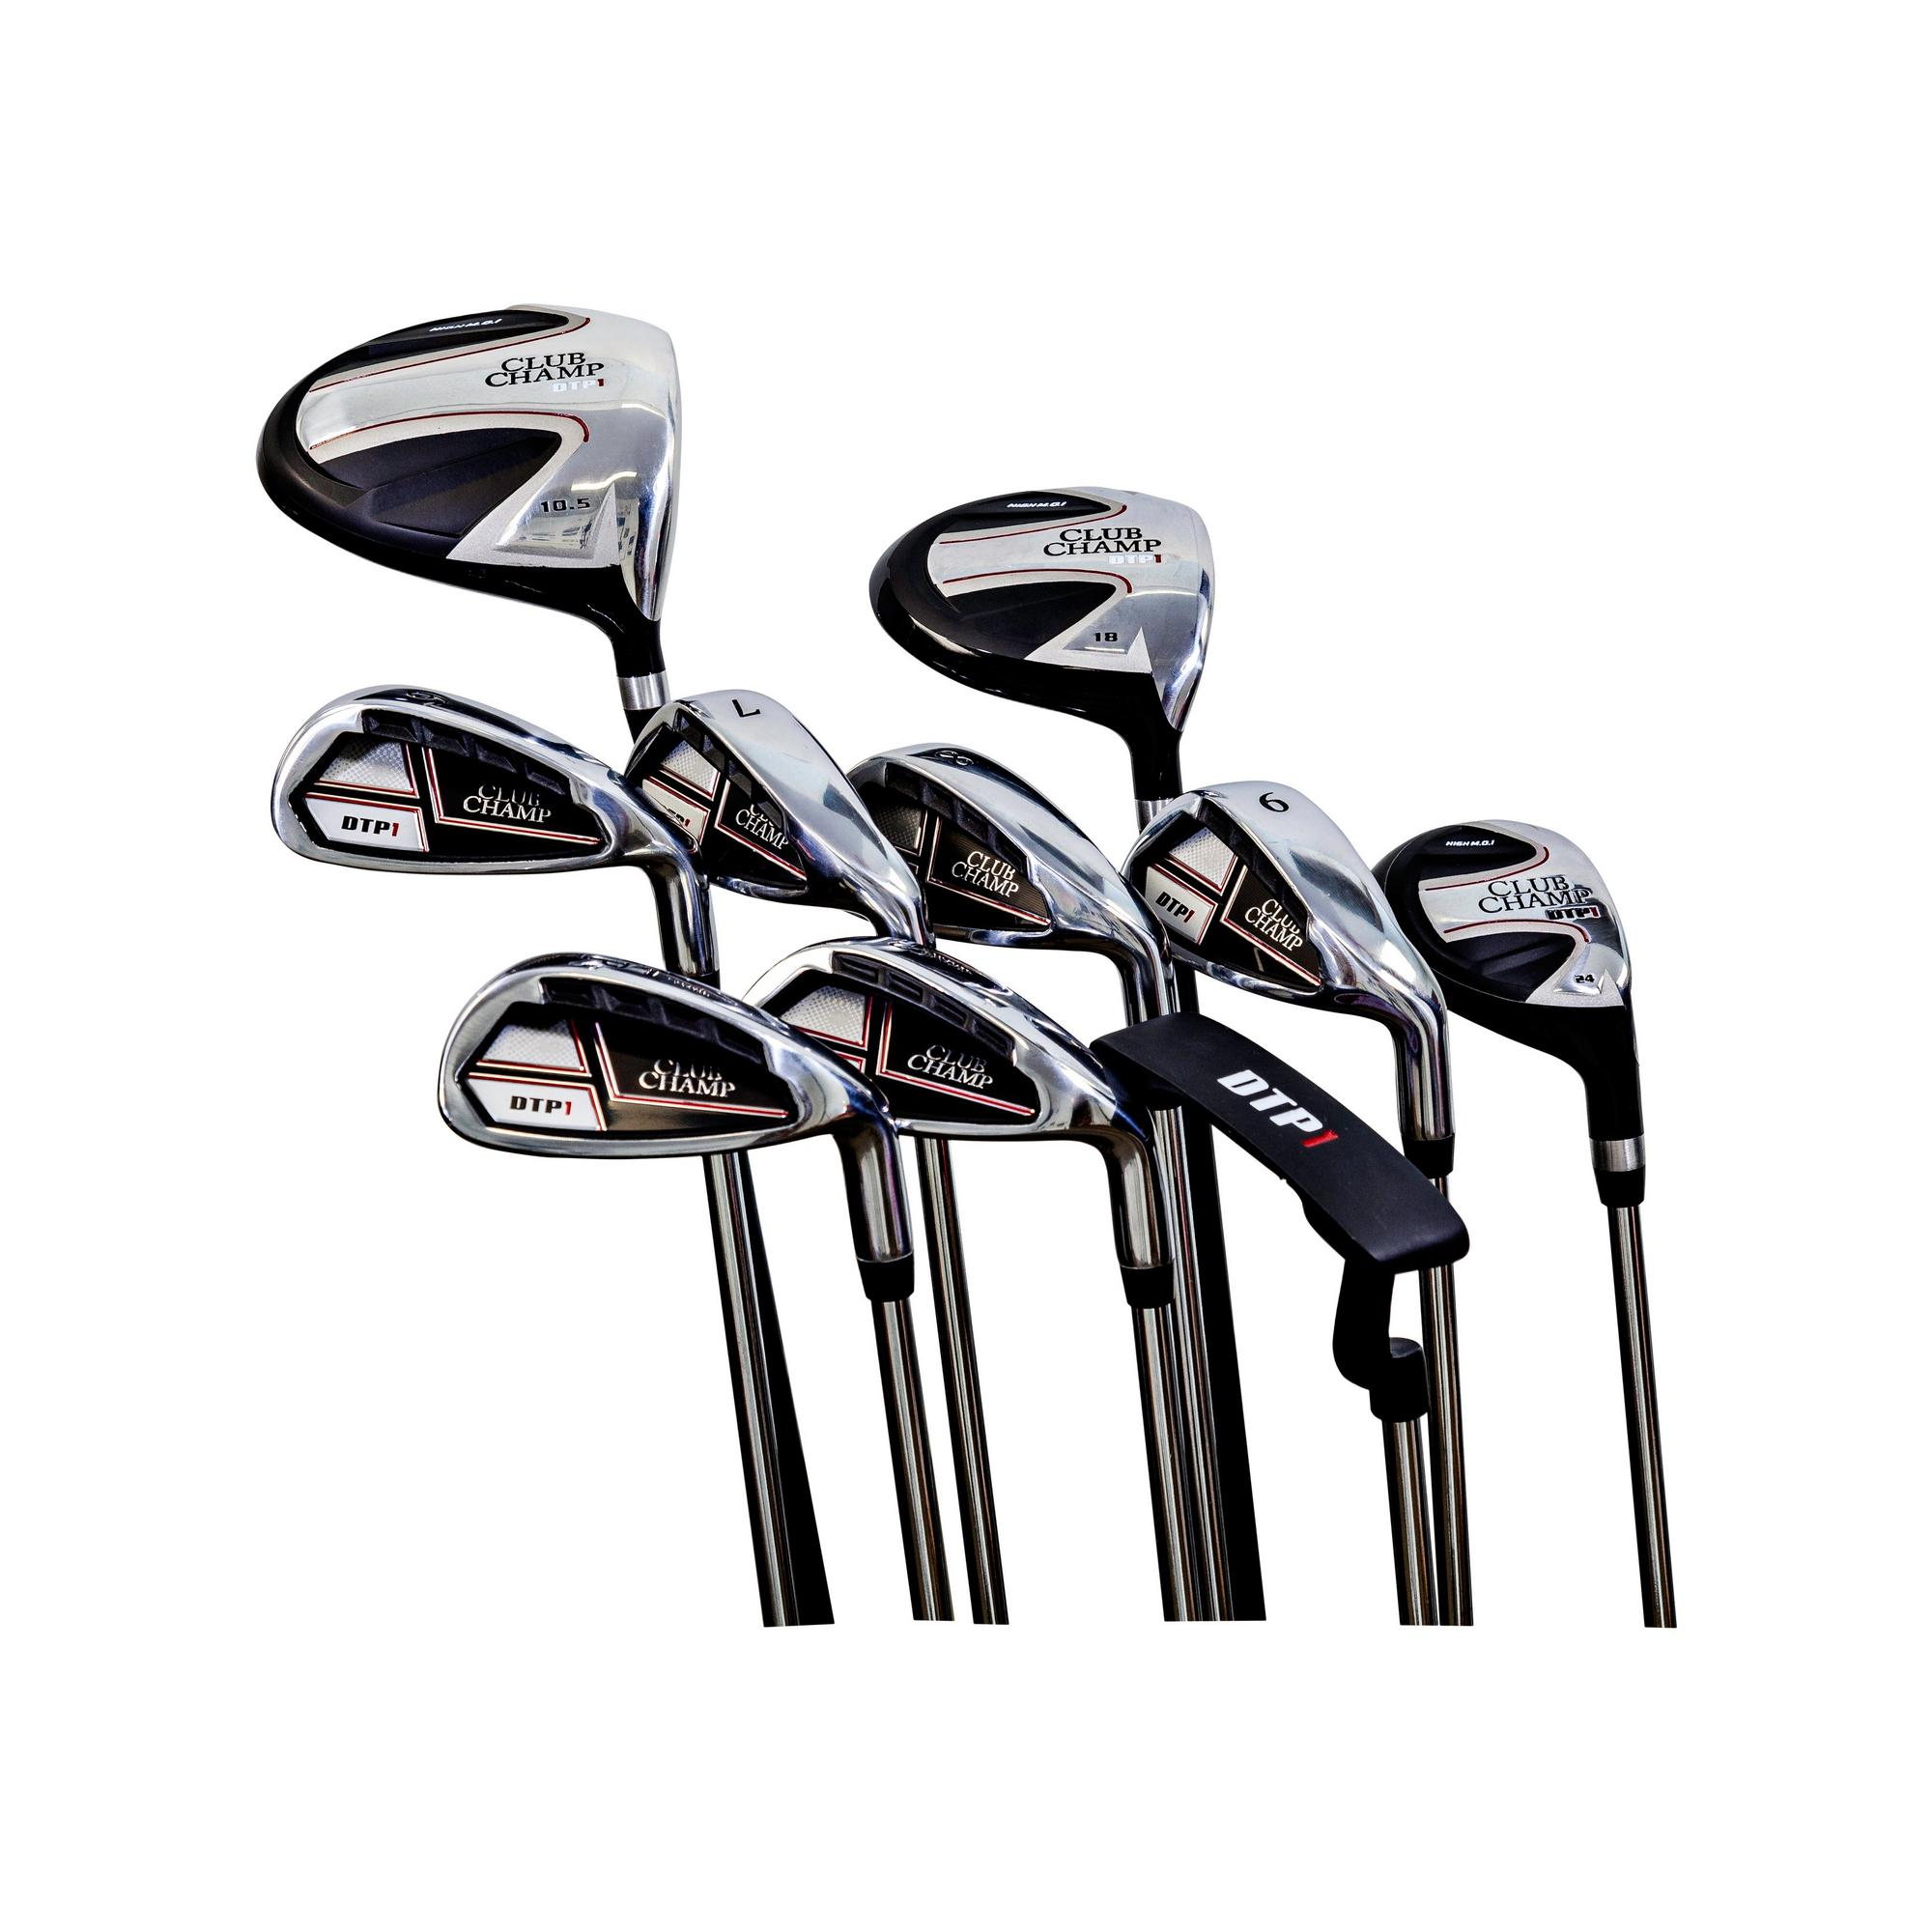 DTP1 10 Piece Golf Set